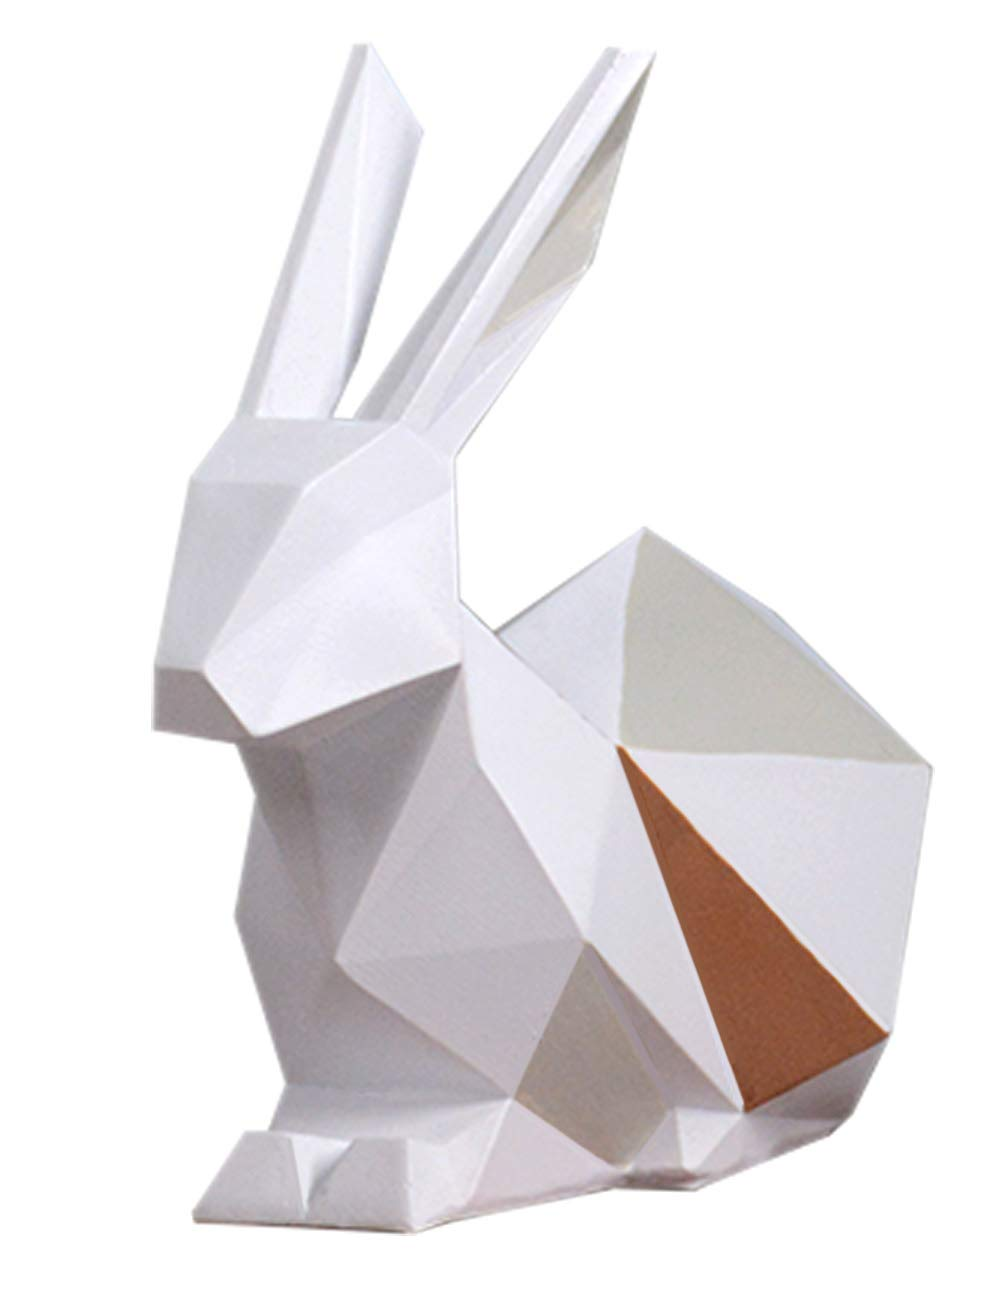 HauCoze Geometric Rabbit Sculpture Statue Decor,Tabletop Figurine,Home Decoration,Souvenirs Gifts for Kids Present,Hand-painted Resin 15cmH